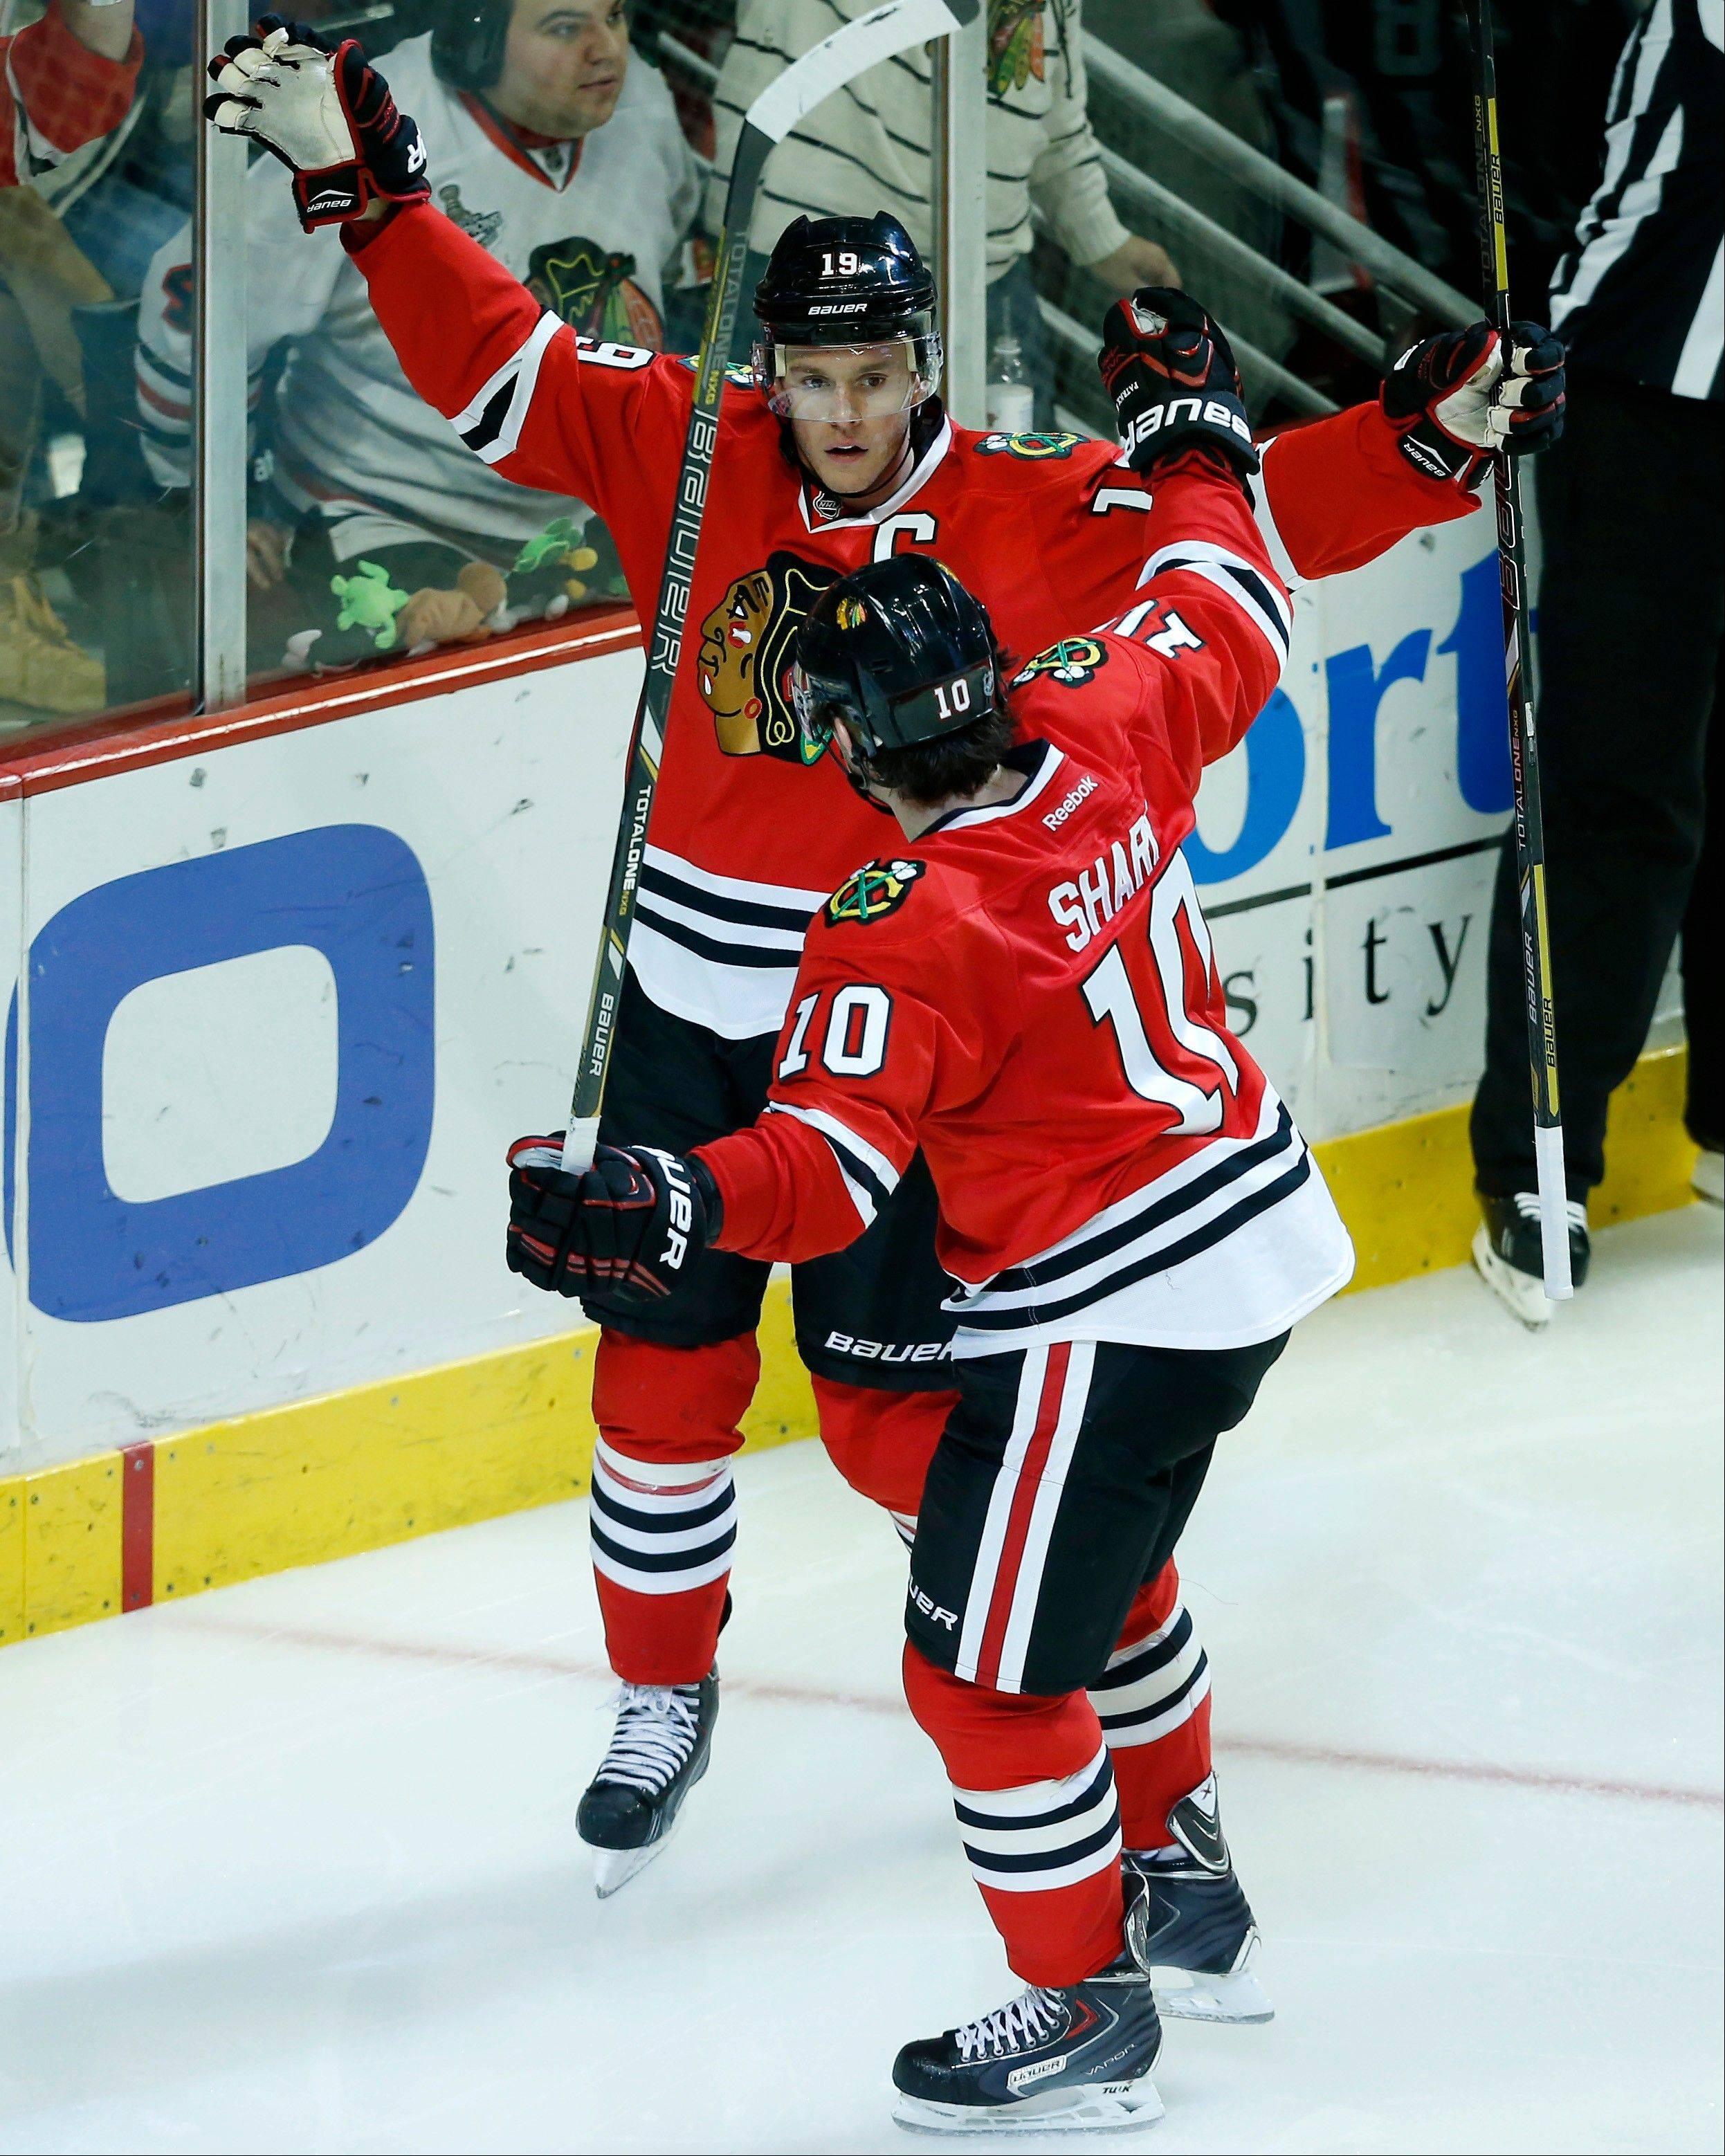 Jonathan Toews, back, celebrates with teammate left wing Patrick Sharp (10) after Toews scored a goal during the third period of an NHL hockey game against the San Jose Sharks on Sunday, Nov. 17, 2013, in Chicago.